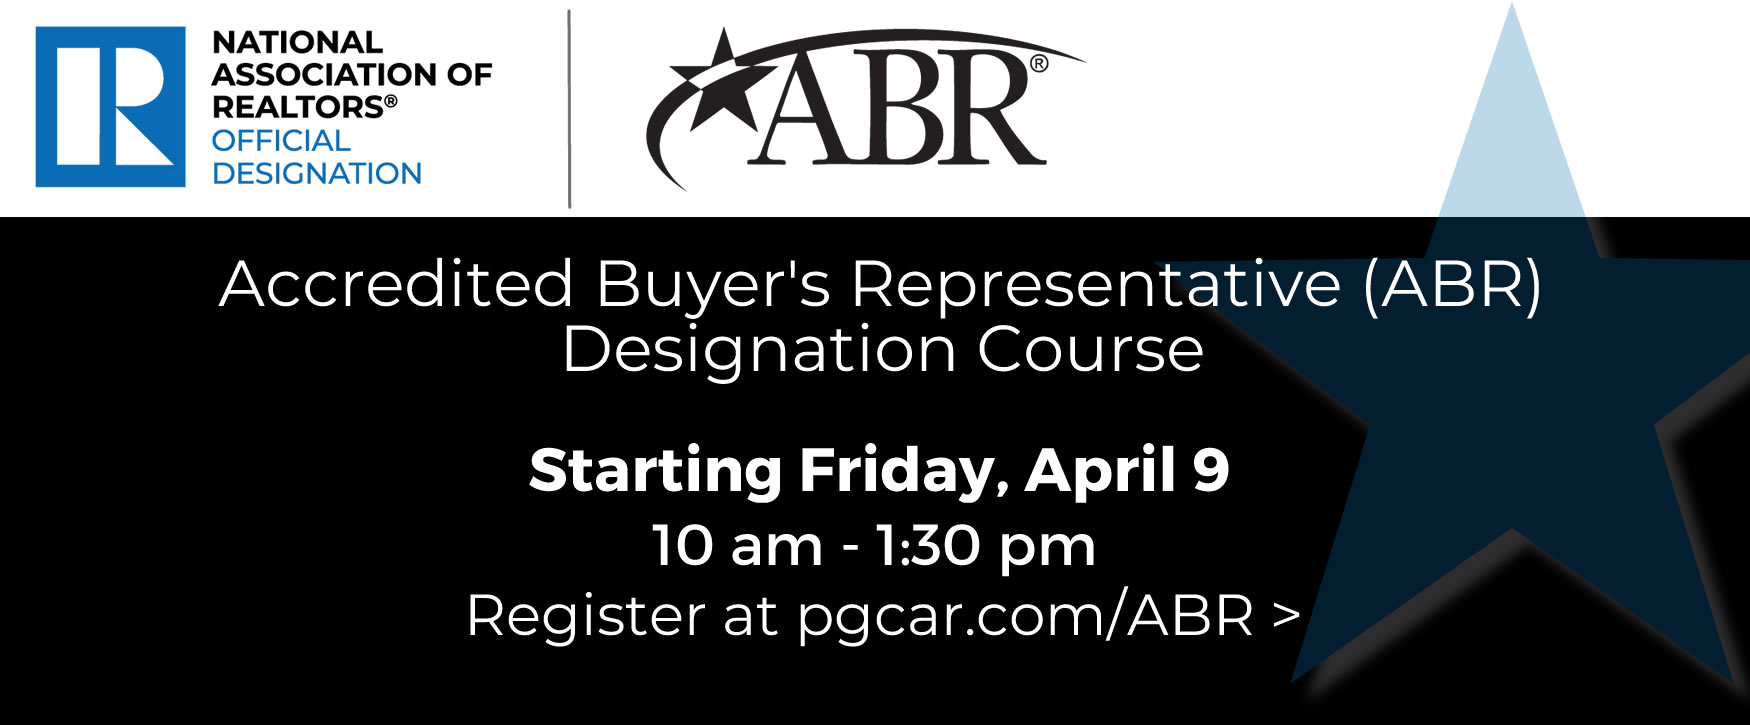 Set yourself apart with the Accredited Buyers Representative (ABR) Designation - starting March 5